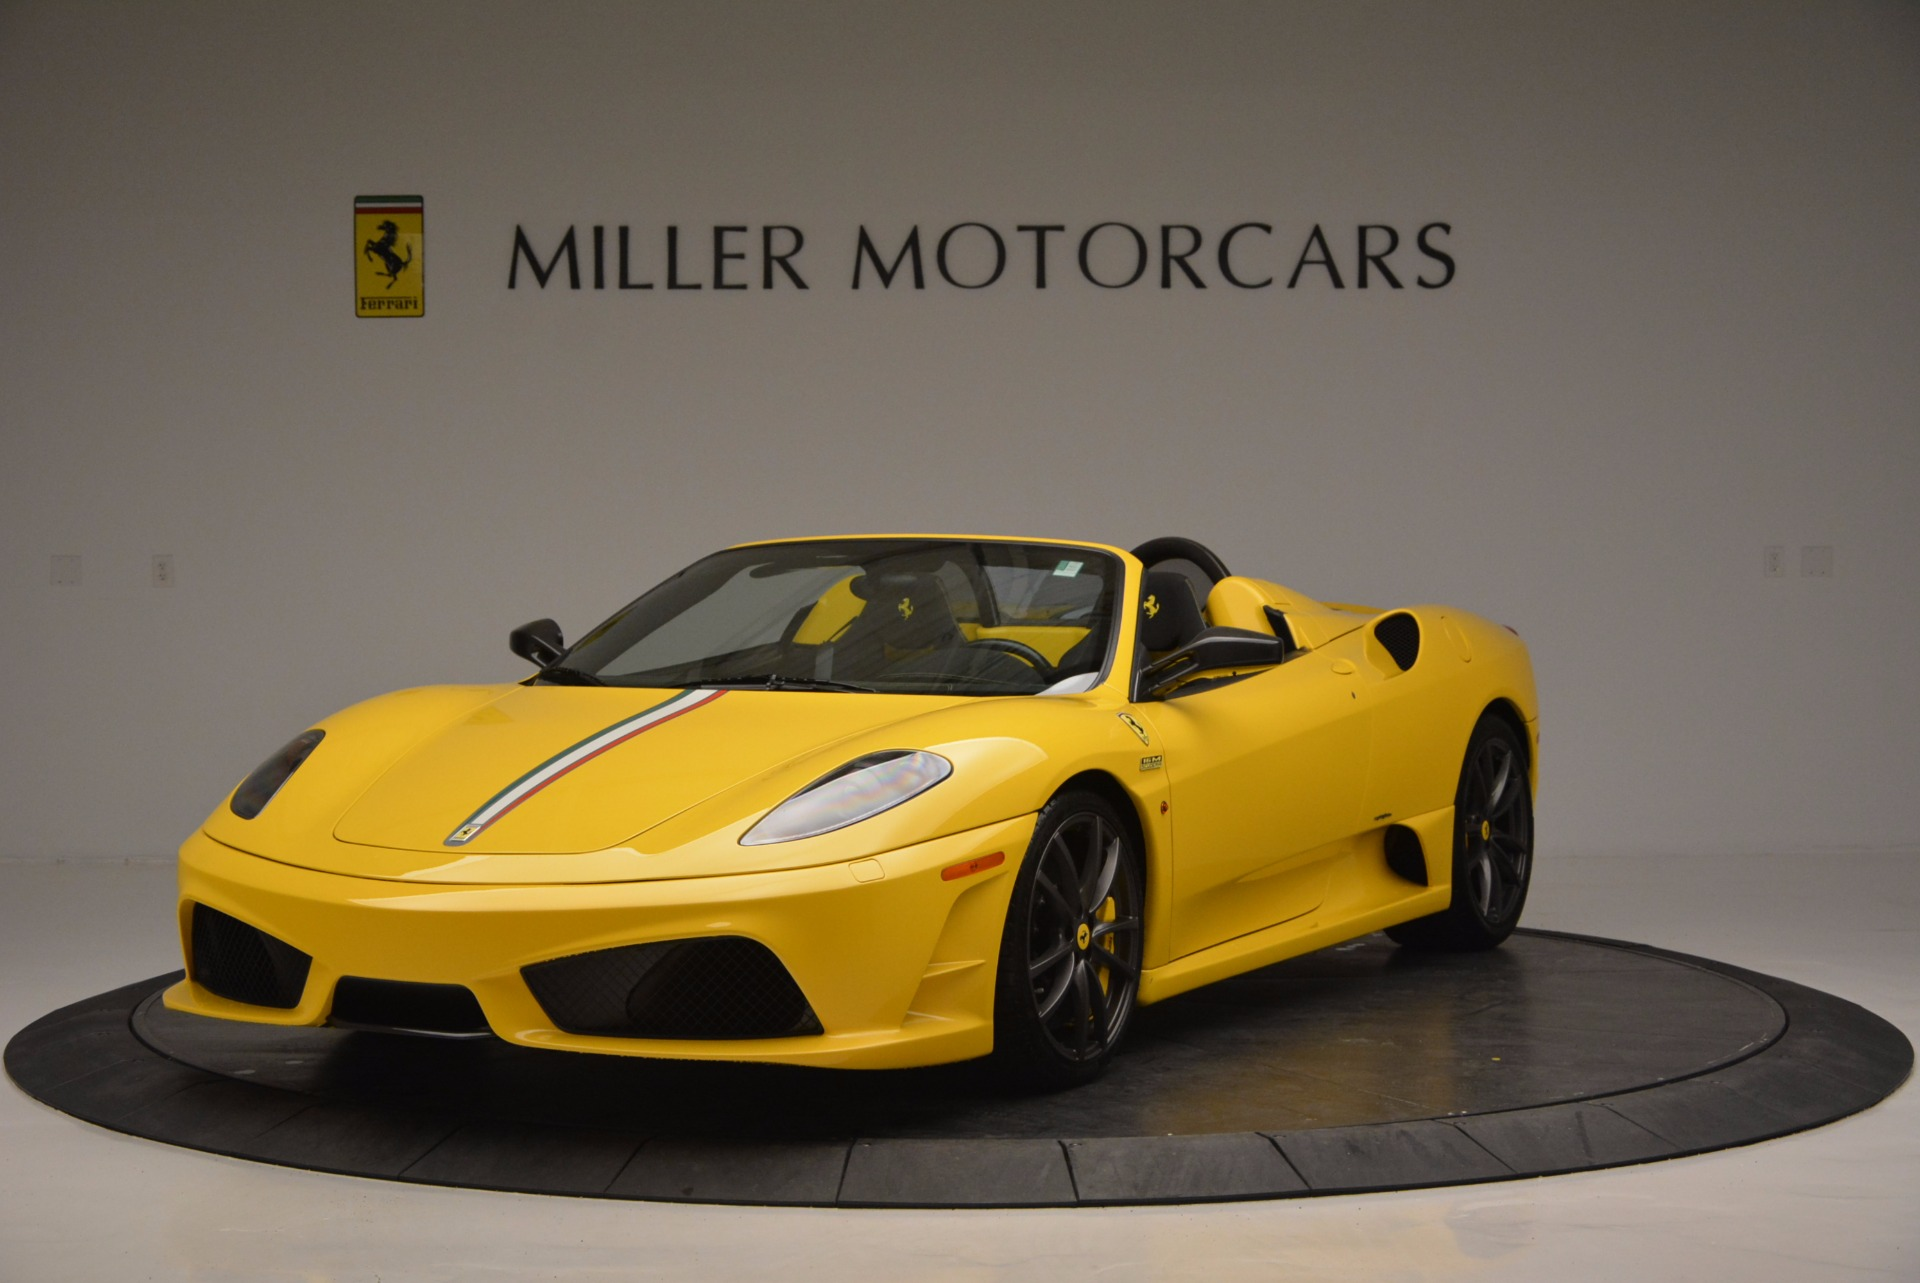 Used 2009 Ferrari F430 Scuderia 16M for sale Sold at Maserati of Westport in Westport CT 06880 1